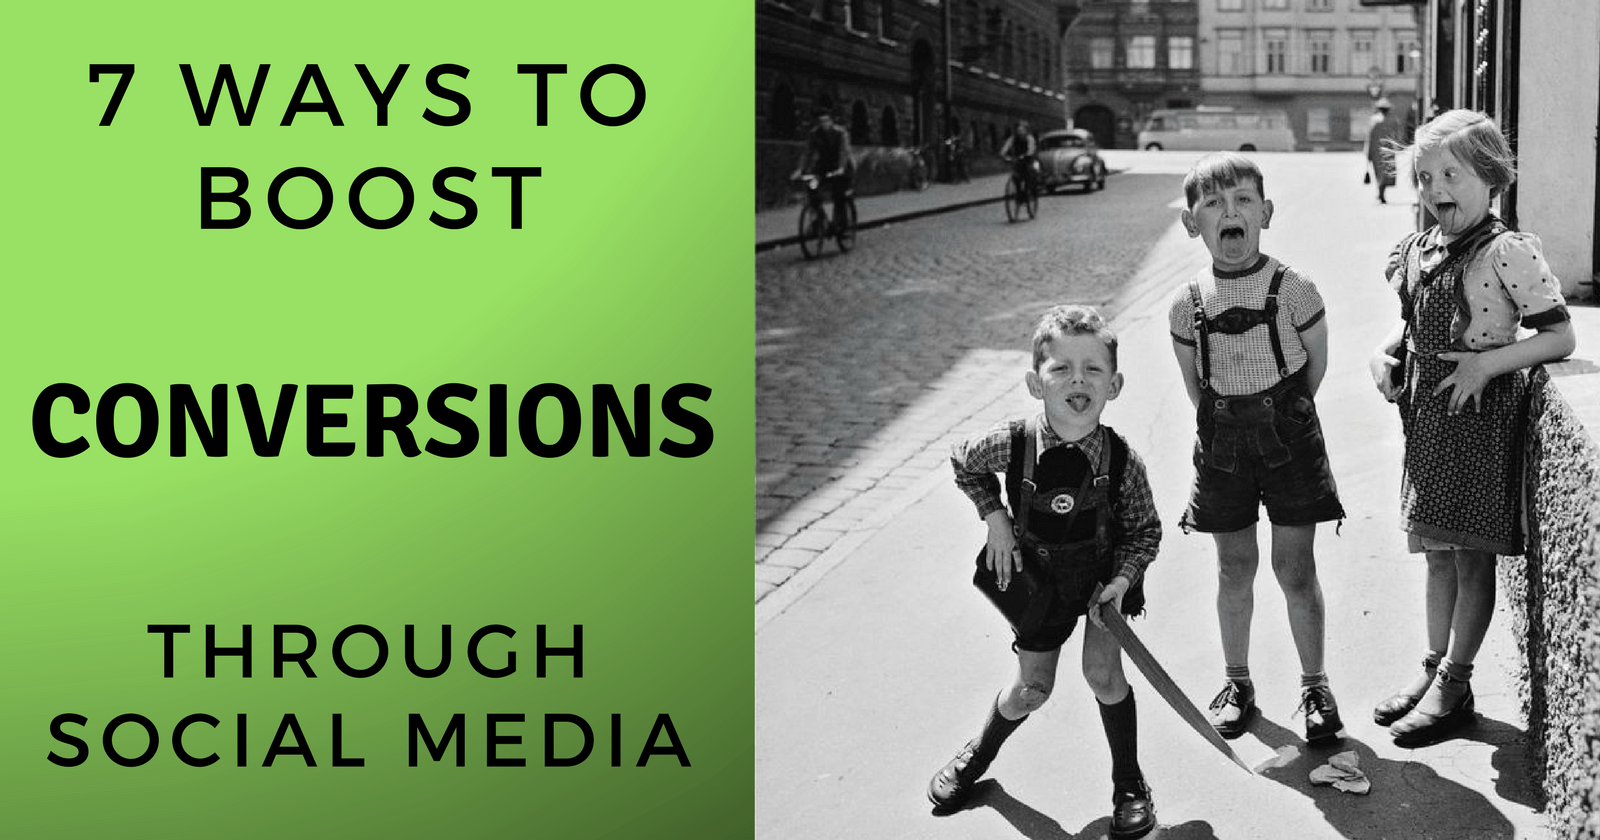 7 Ways to Boost Your Conversions Through Social Media by @malleeblue